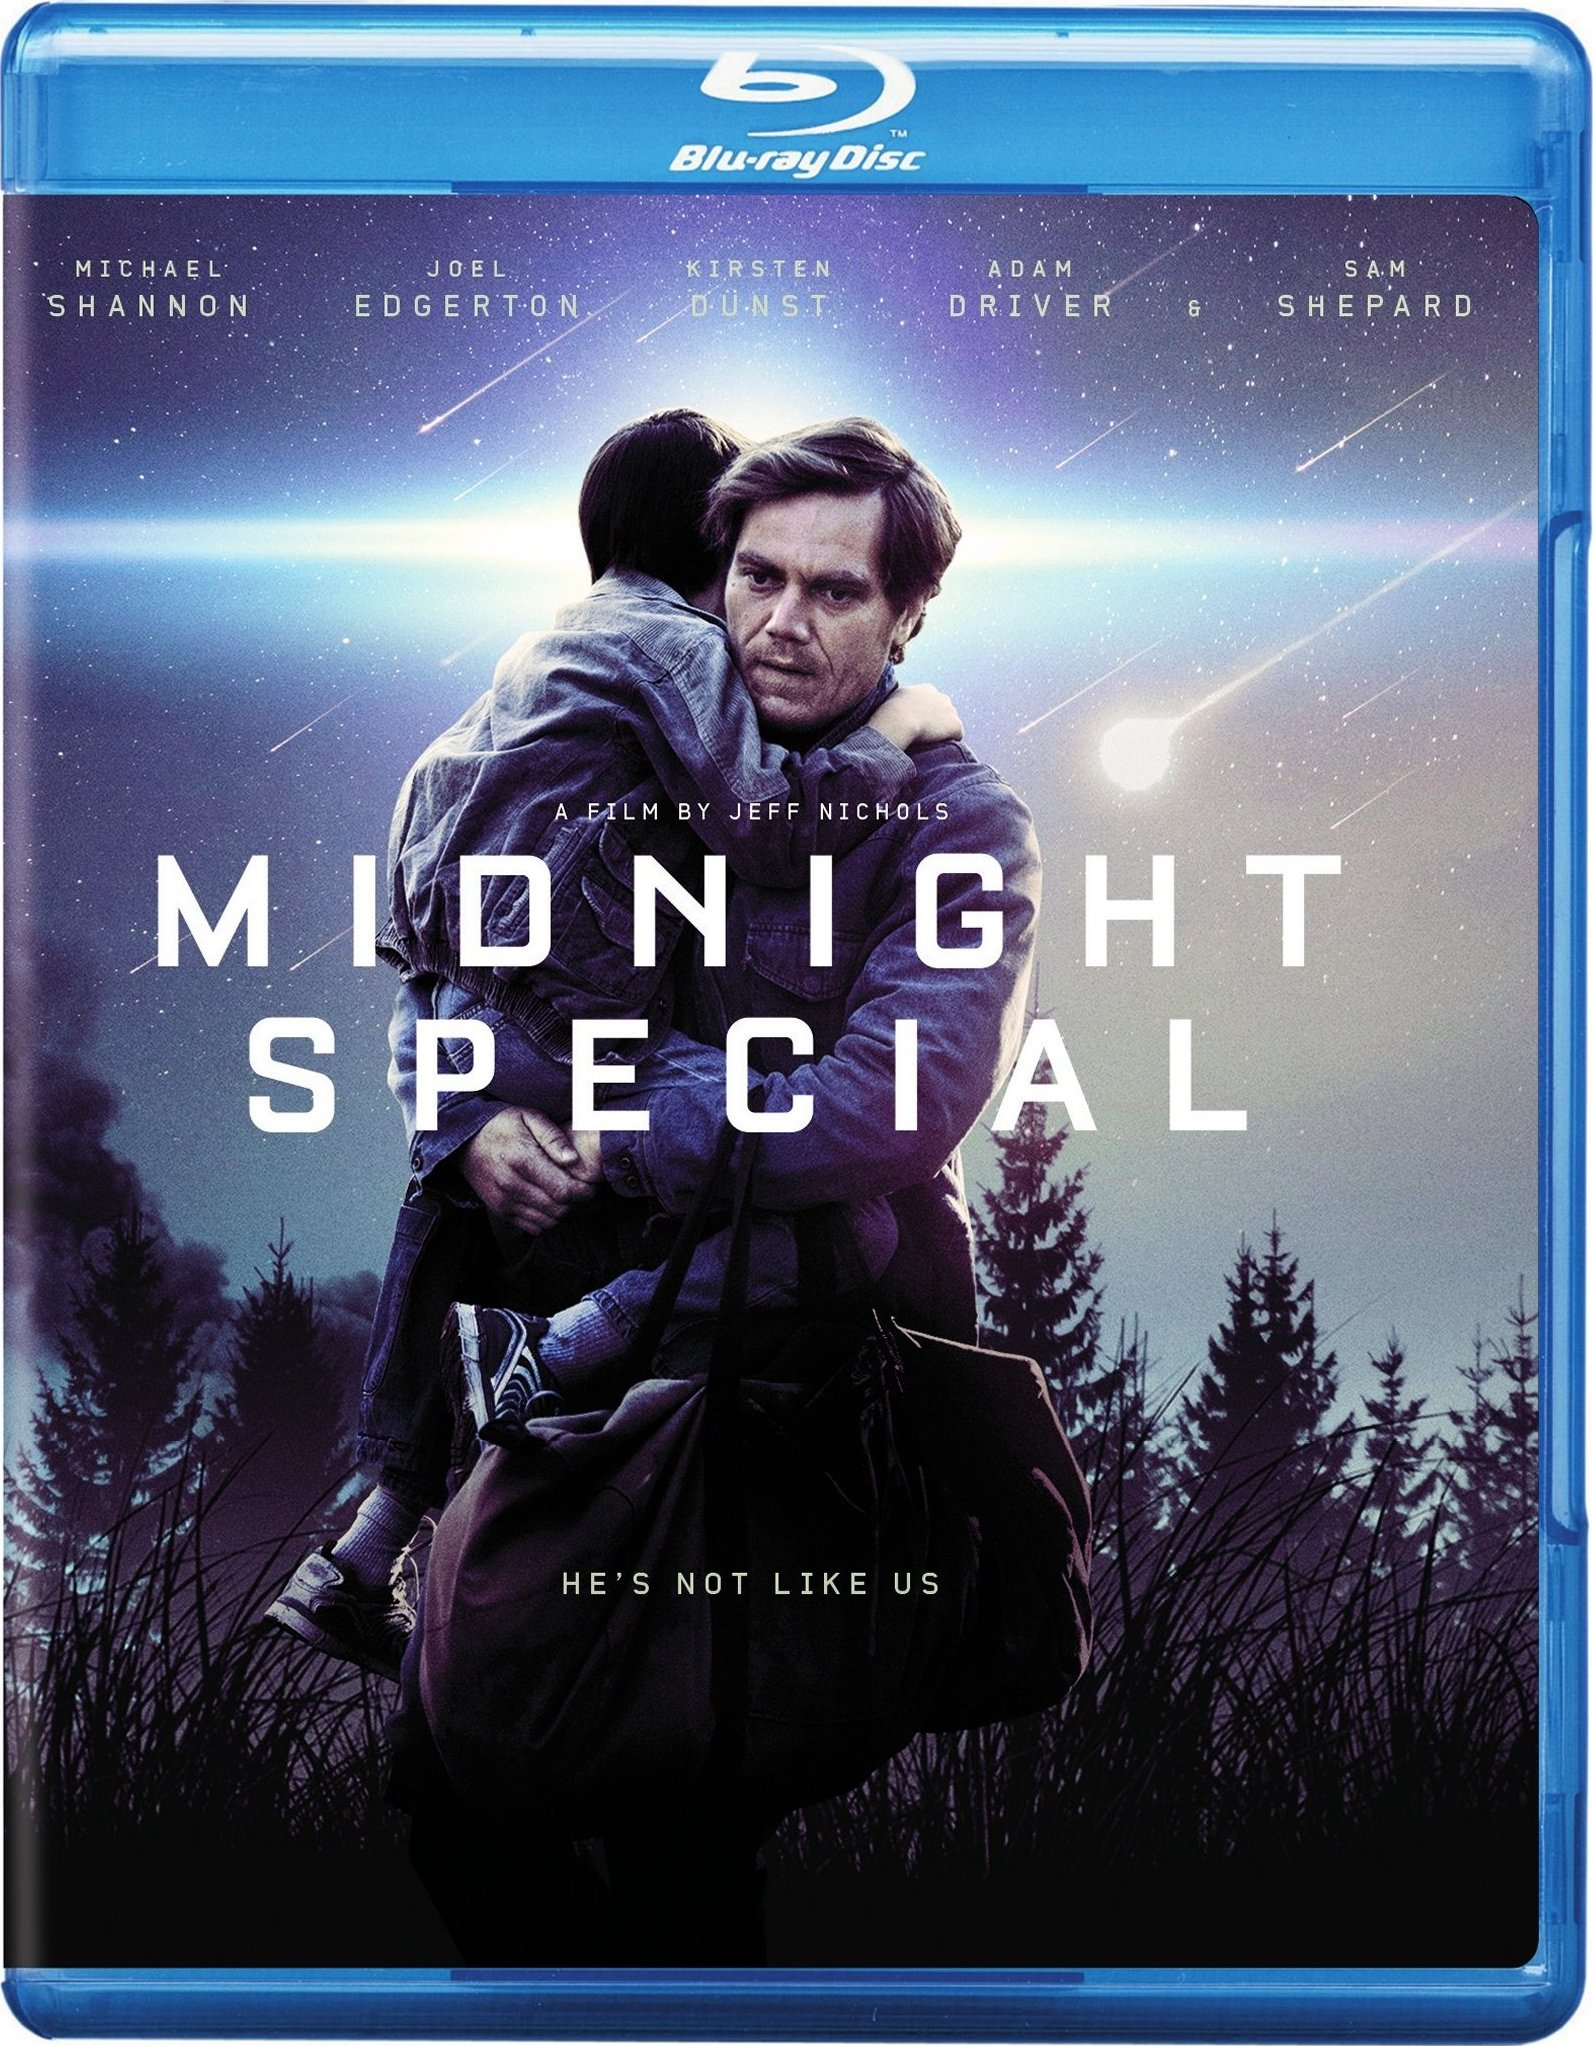 Midnight Special (2016) poster image